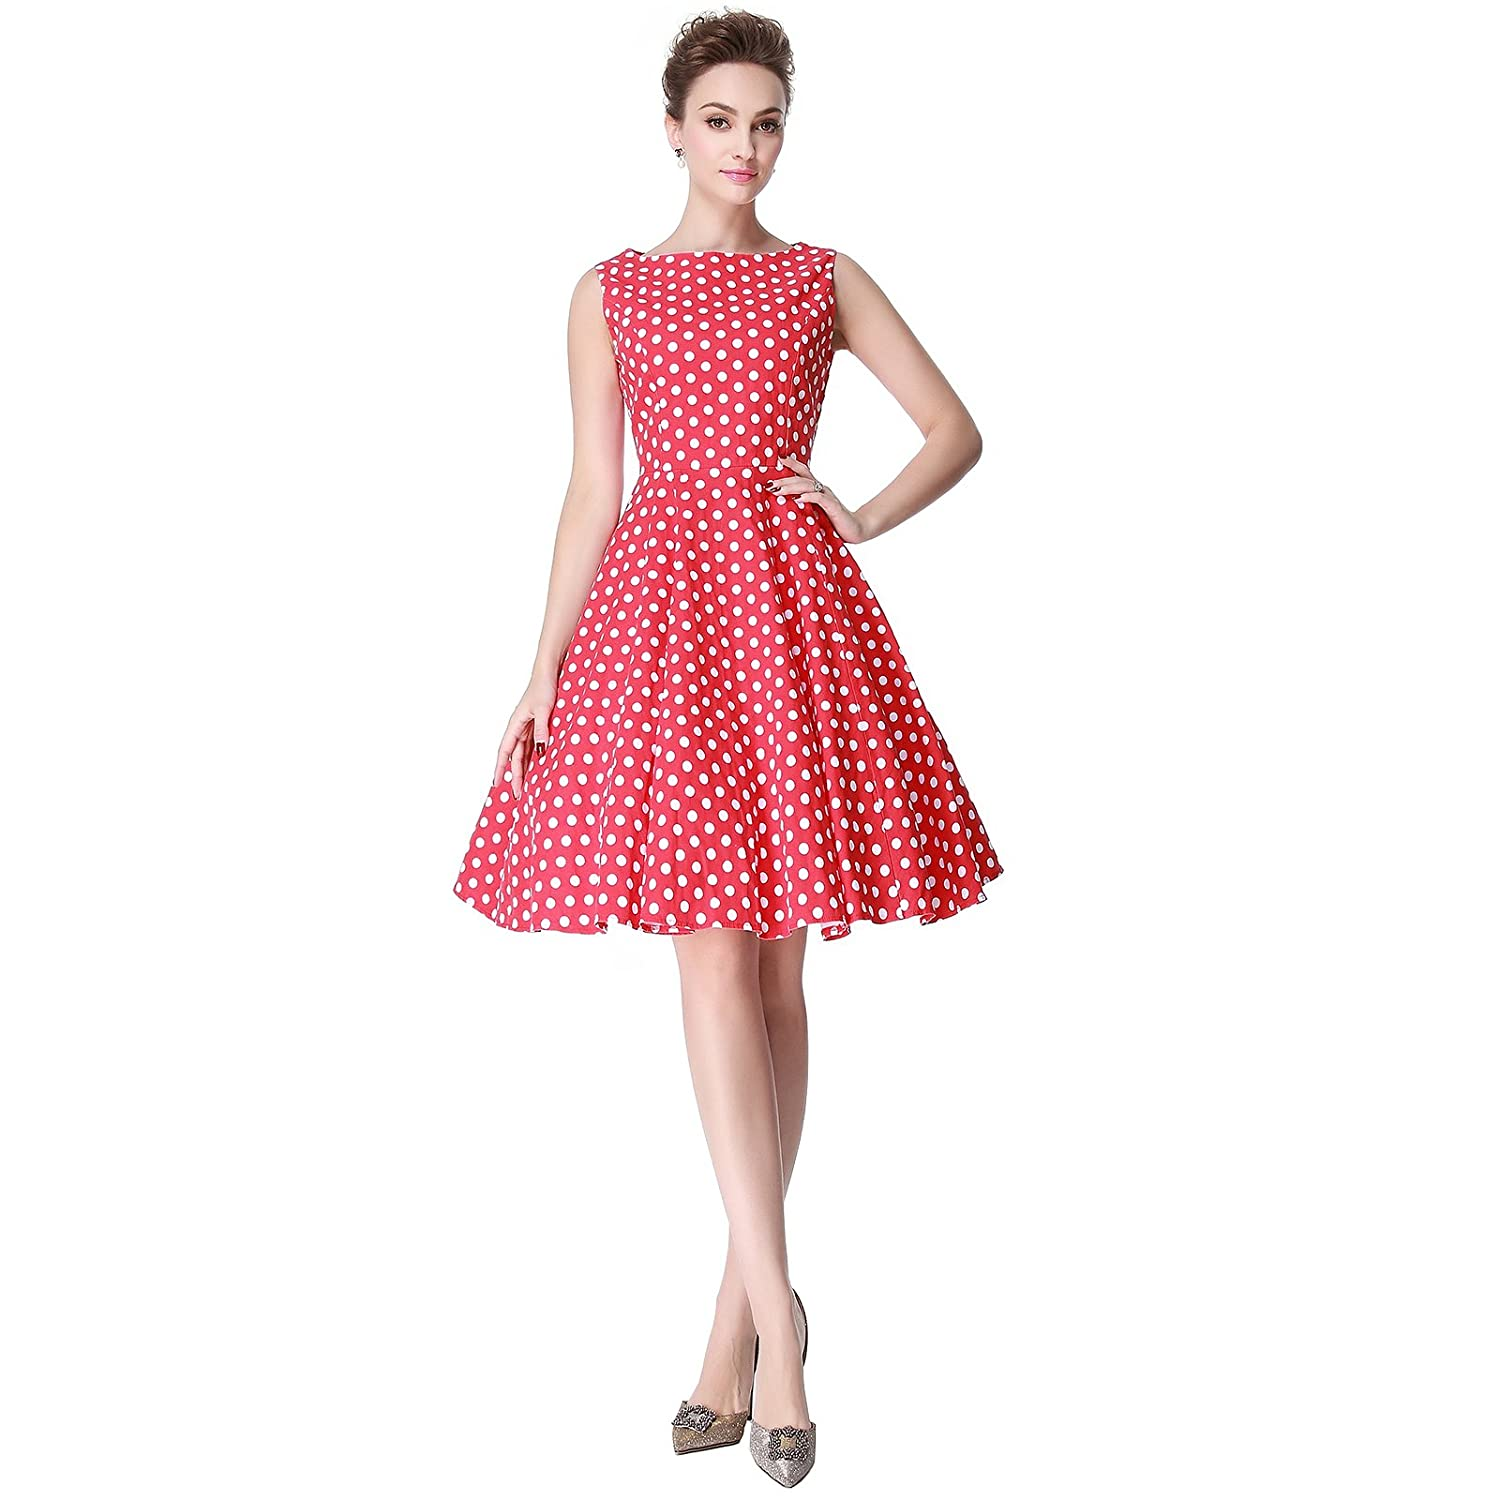 1950s Polka Dot Dresses Heroecol Womens Vintage 1950s Dresses Boat Neck Sleeveless 50s 60s Polka Dot Style Retro Swing Cotton Dress $24.99 AT vintagedancer.com